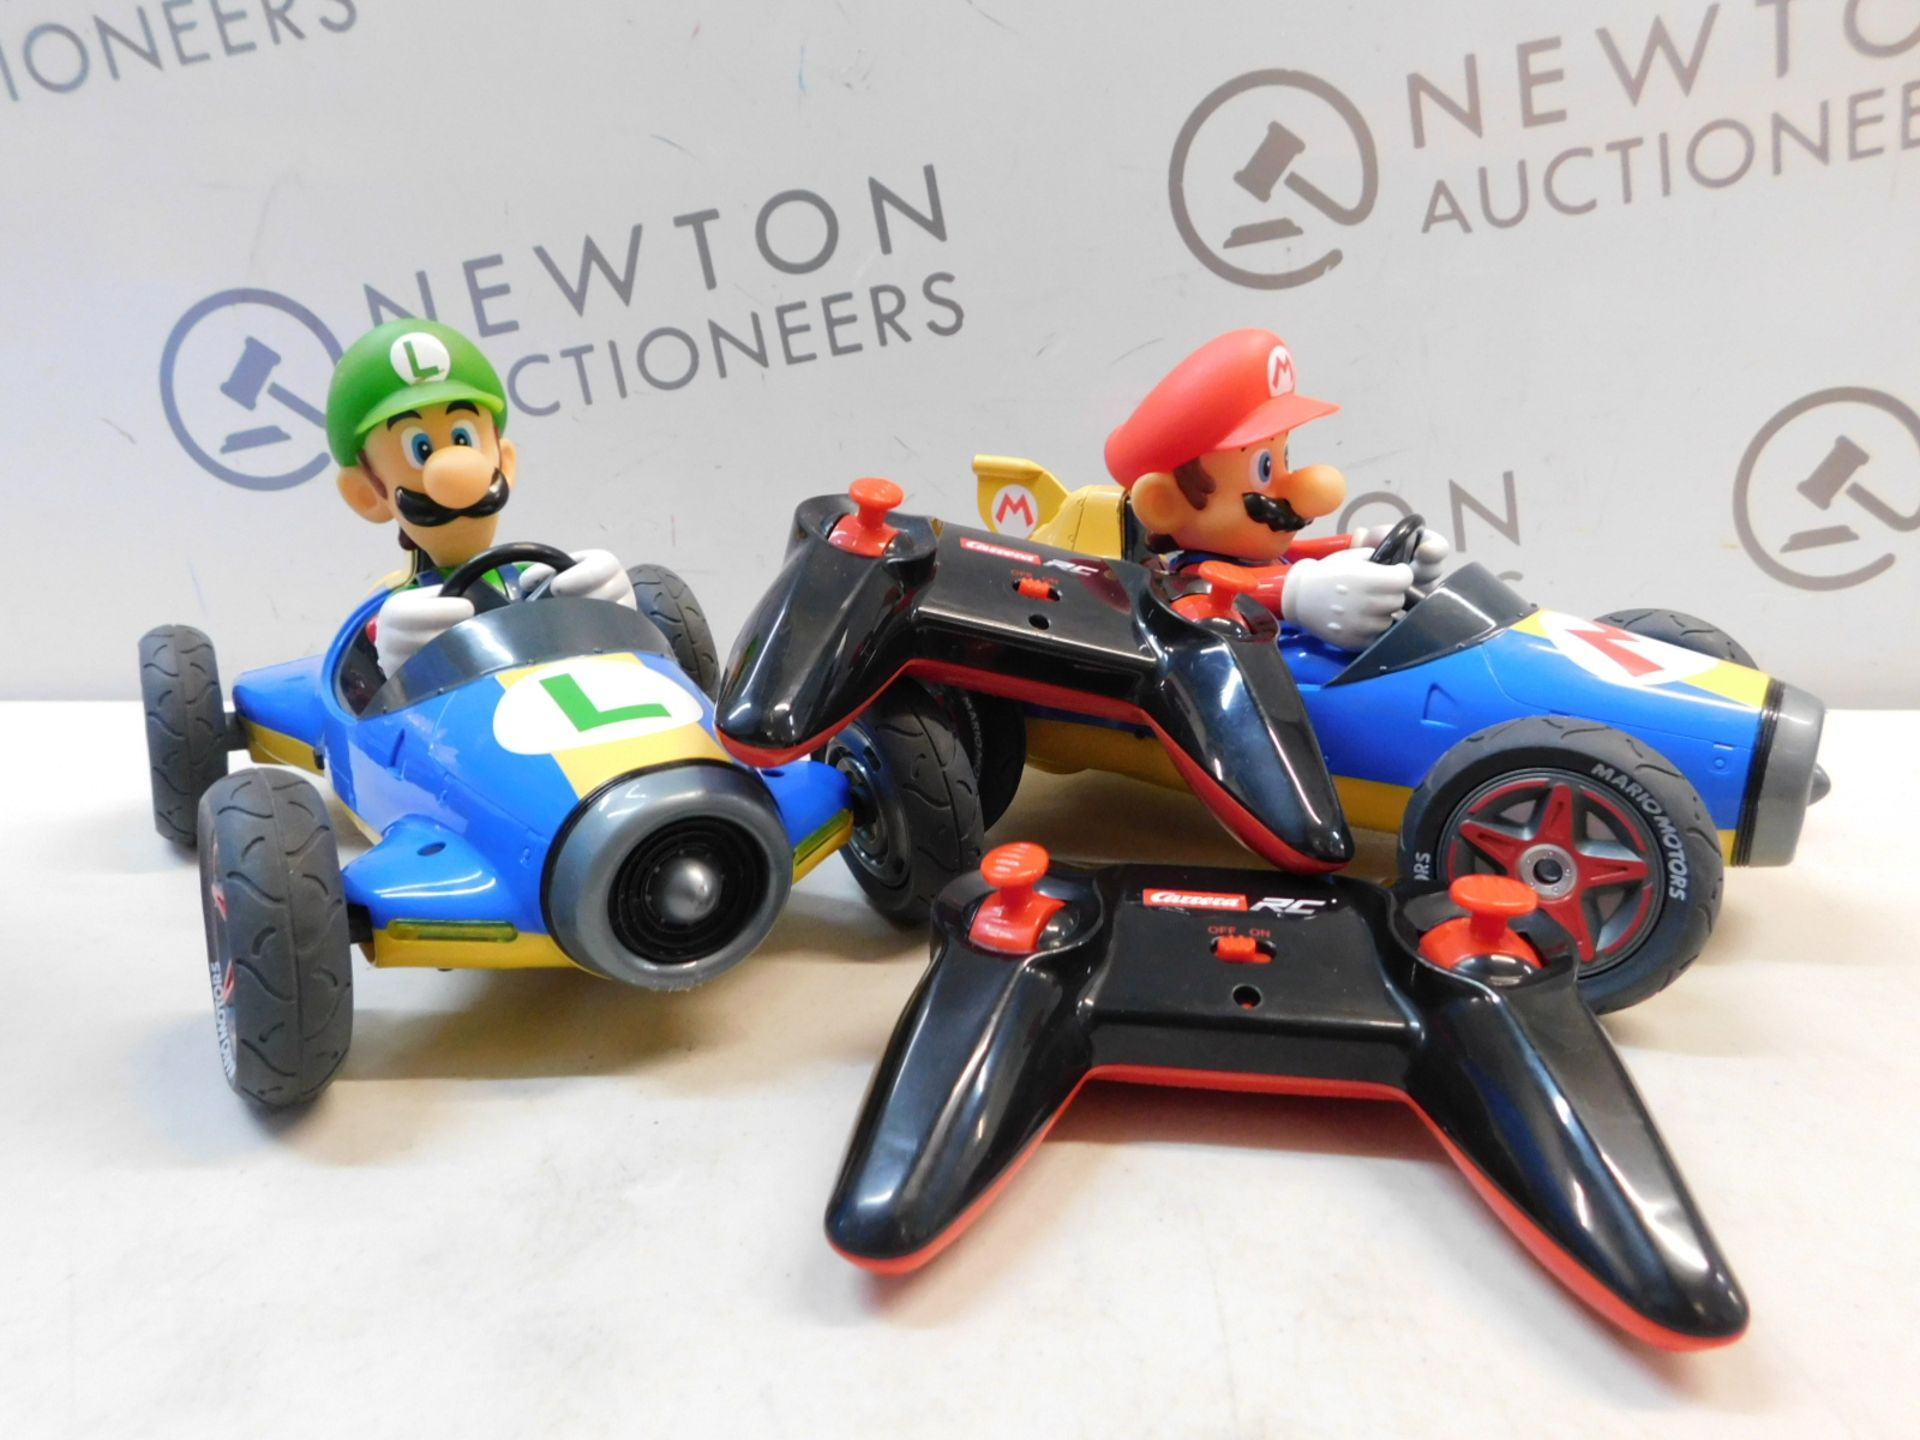 1 CARRERA REMOTE CONTROLLED MARIO RACE KART TOYS WITH SOUND RRP £79.99